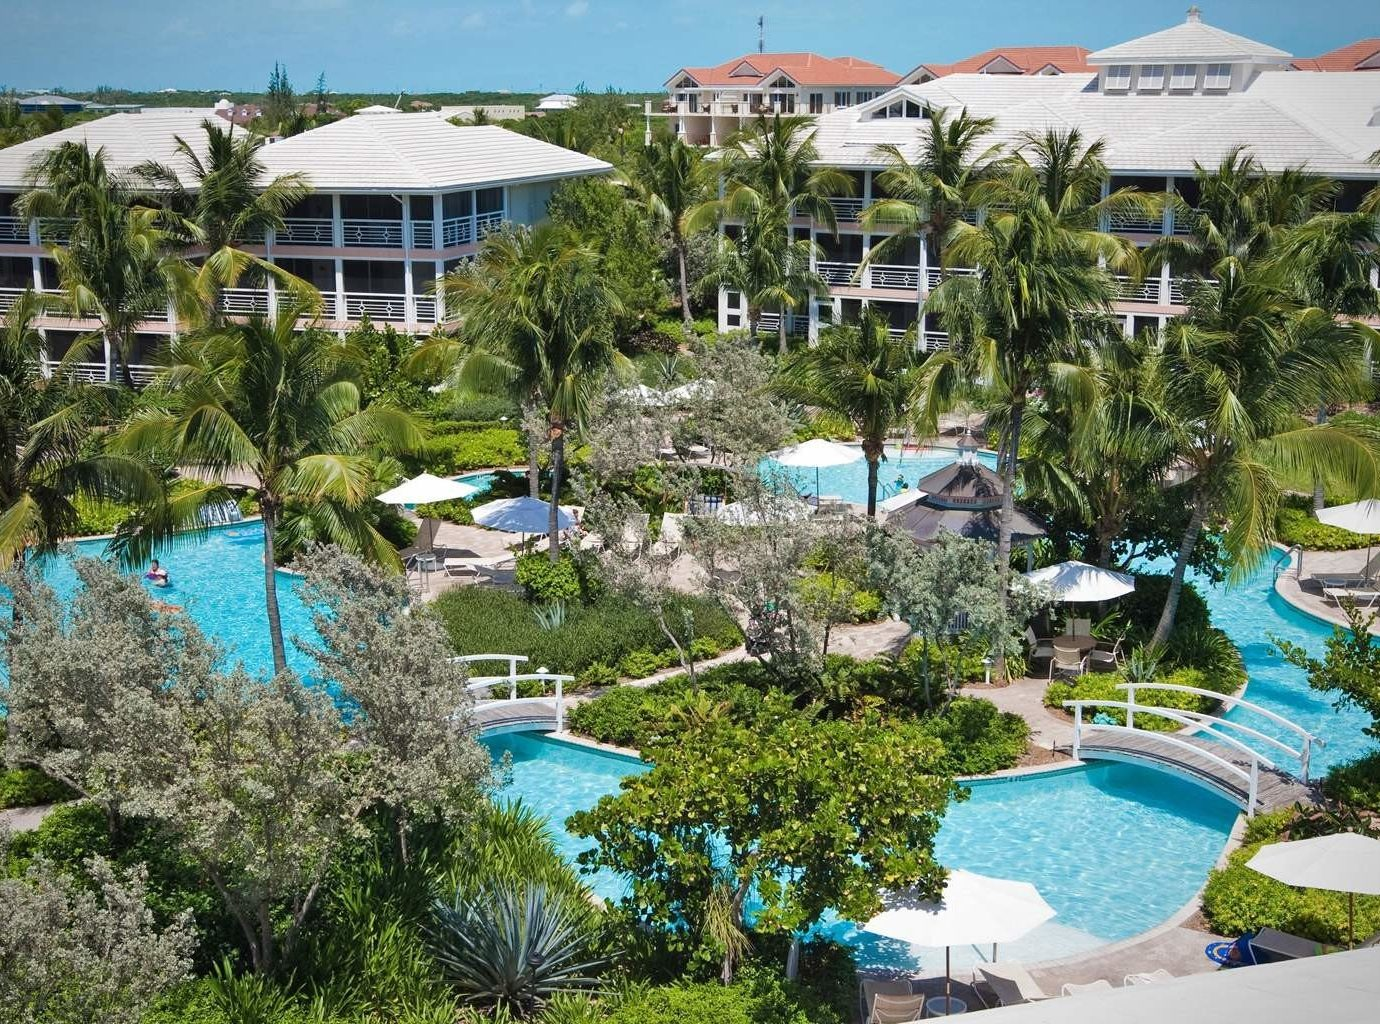 Grounds Hip Luxury Modern Pool building tree sky Resort grass leisure house property Water park Nature Beach marina caribbean swimming pool Village Garden